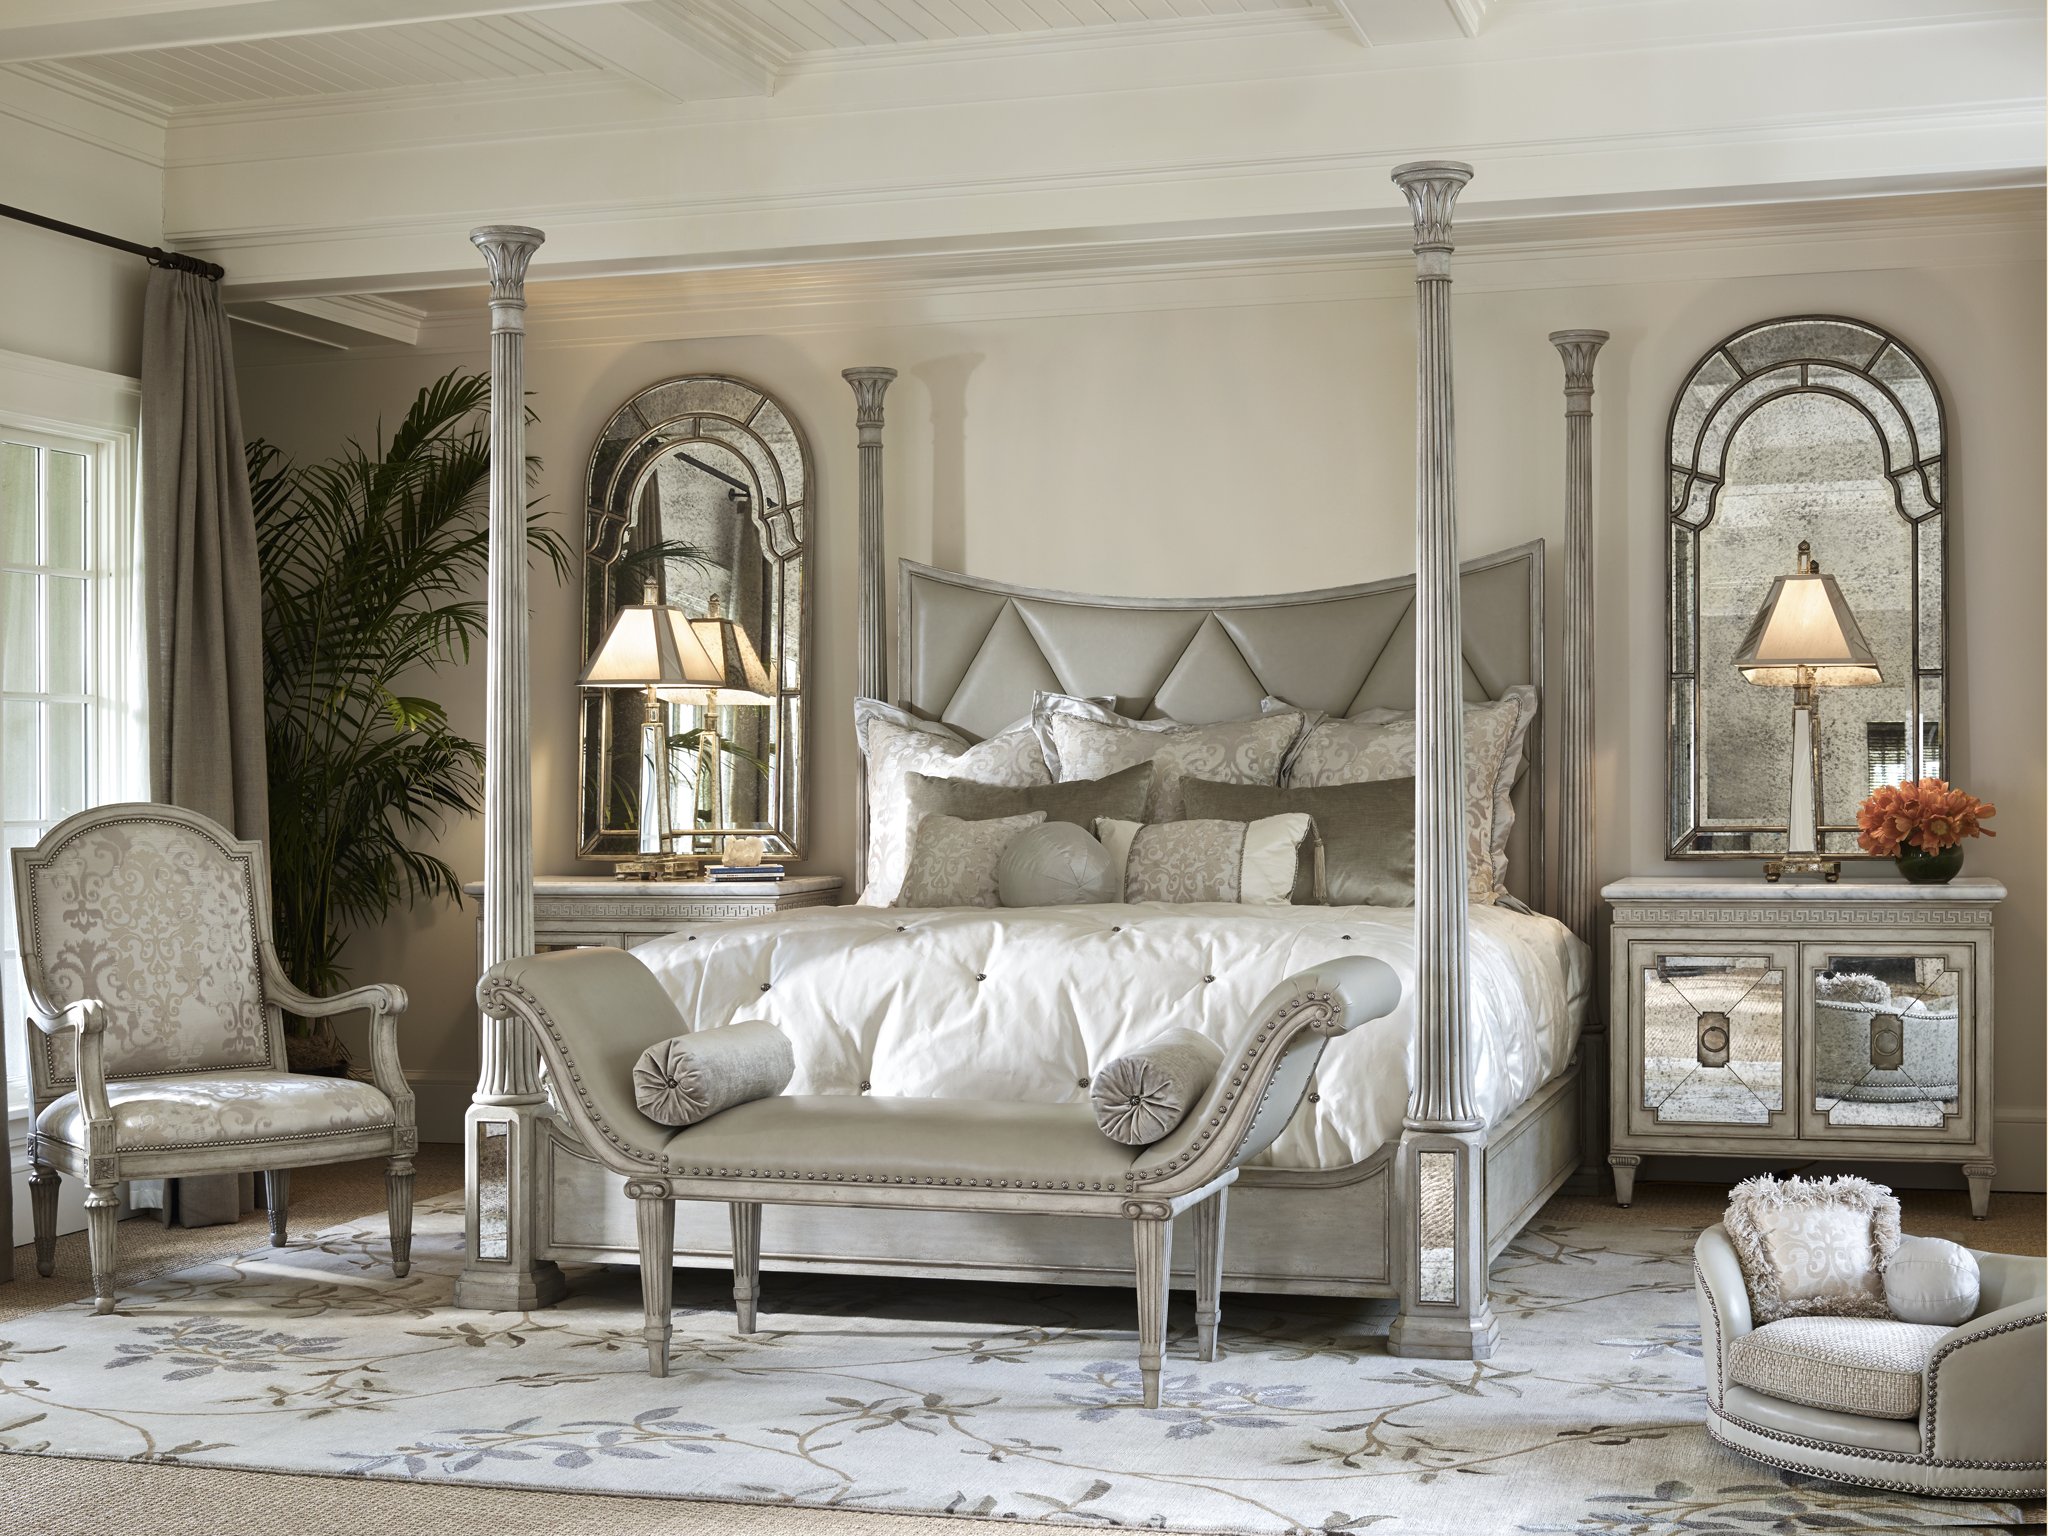 Shop For Marge Carson Ionia Bedroom, And Other Master Bedroom Sets At Elite  Interiors In Myrtle Beach, SC.